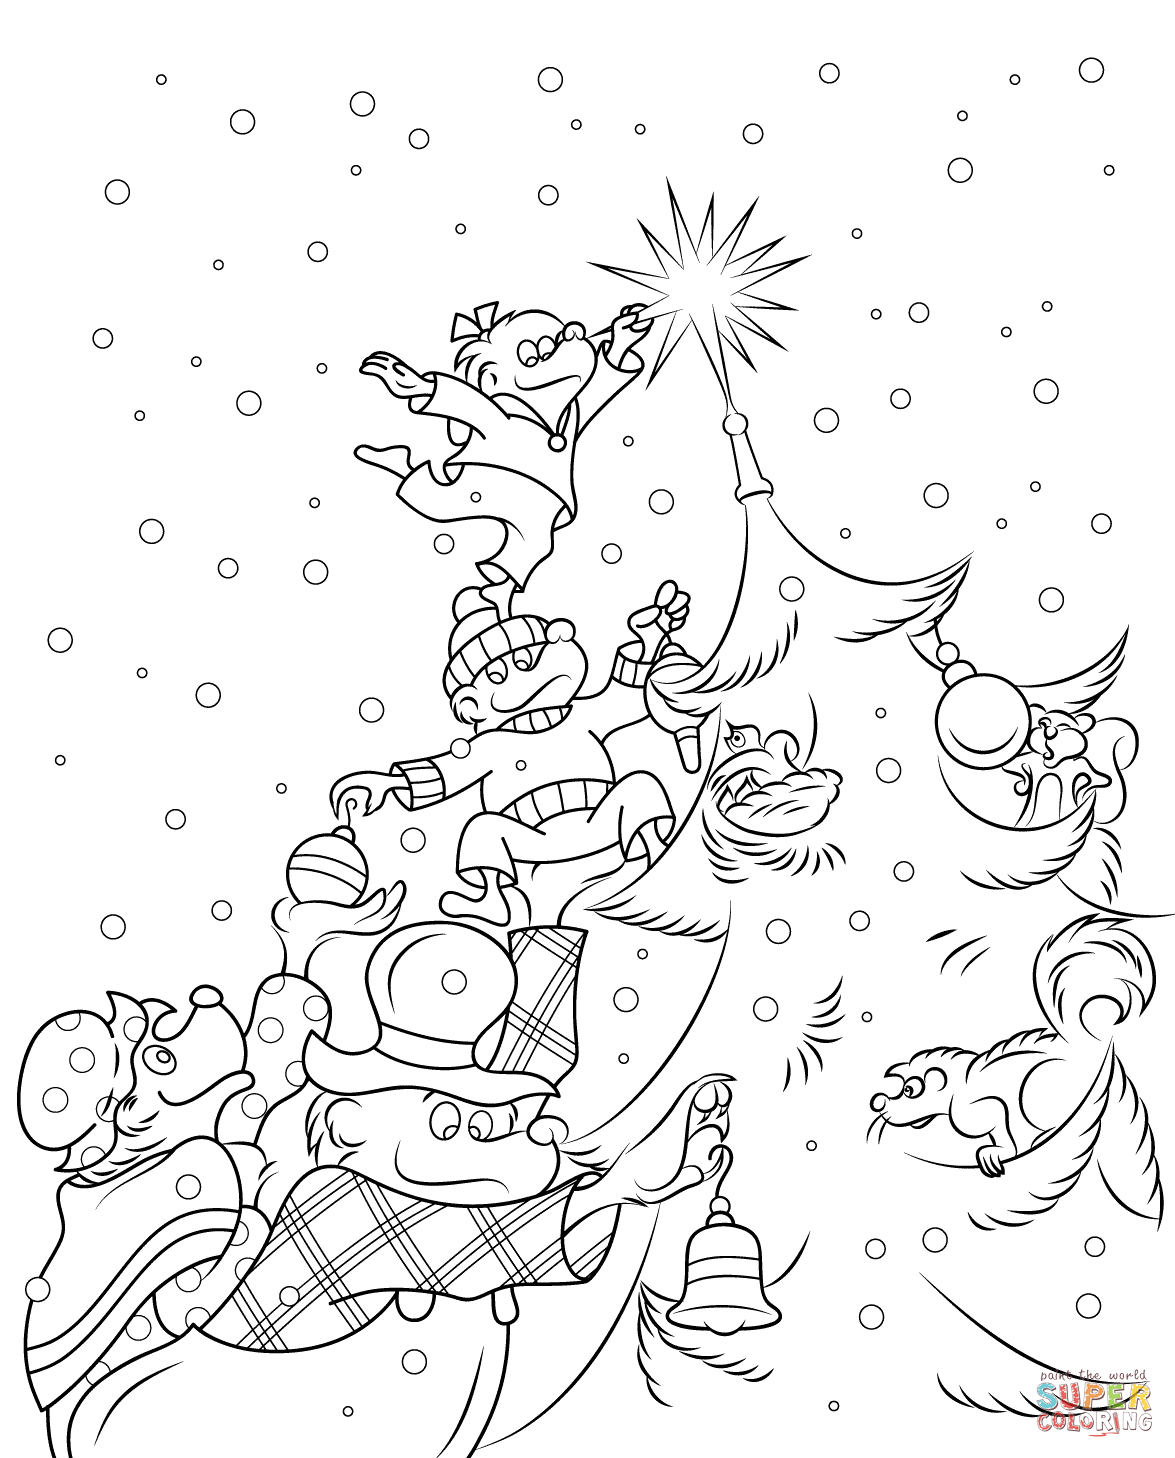 - Berenstain Bears Coloring Pages Free Coloring Pages. Top 25 Free